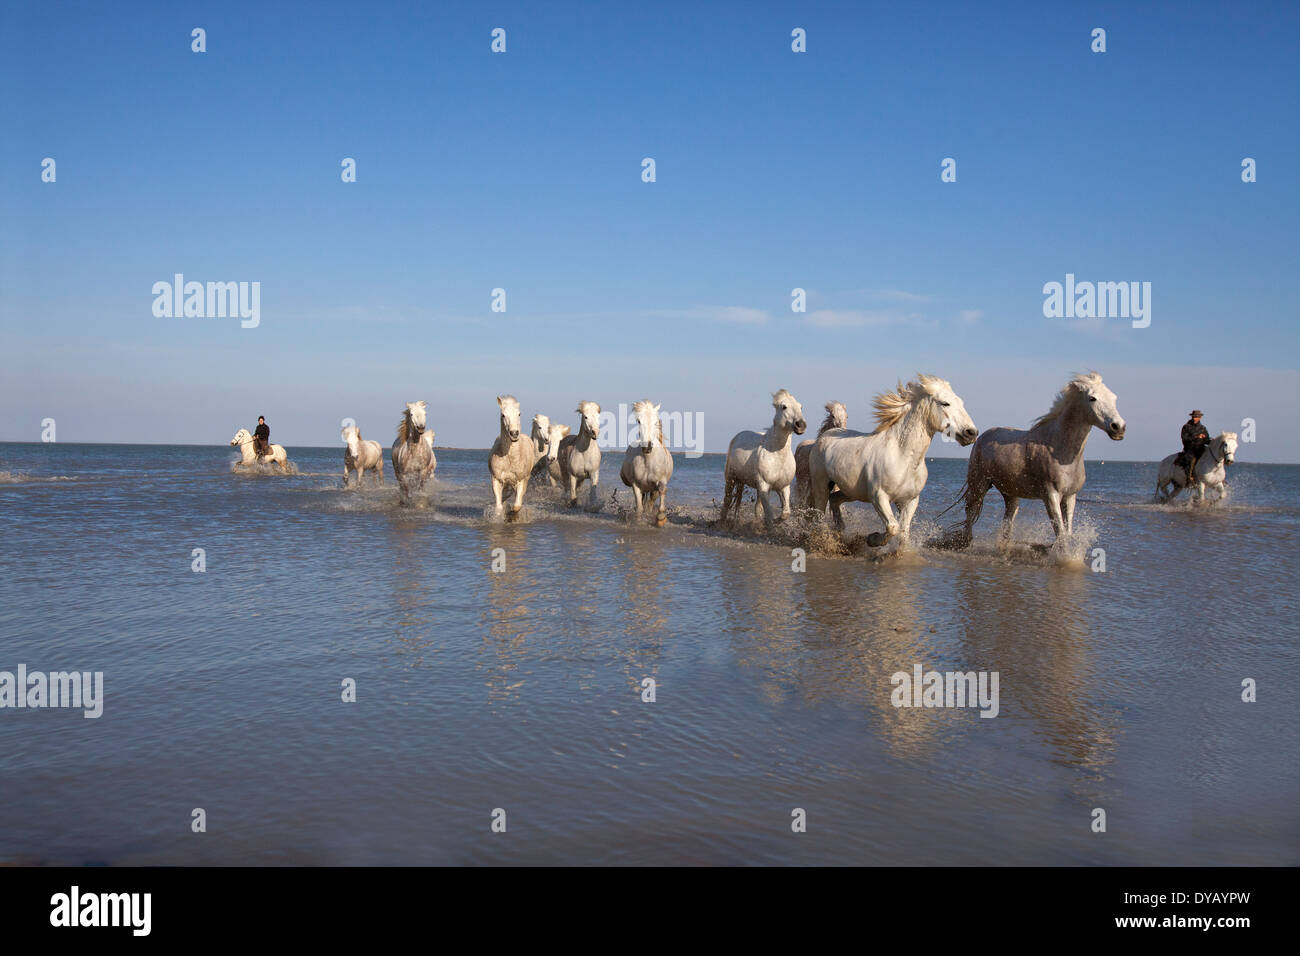 White horses of the Camargue Sth France in water at sunset - Stock Image